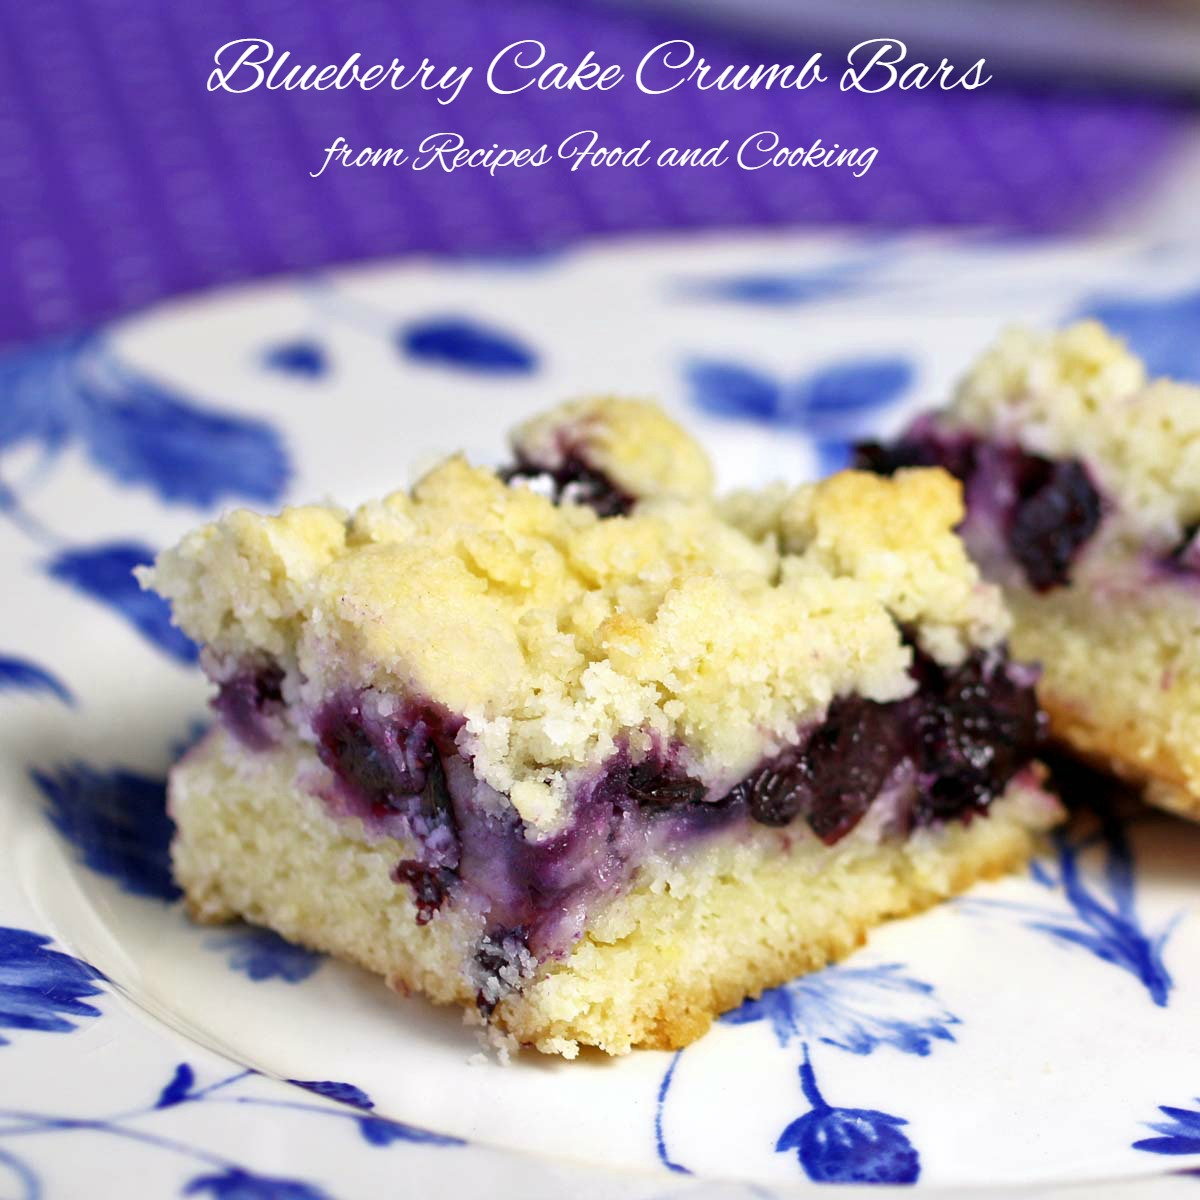 Blueberry Cake Crumb Bars